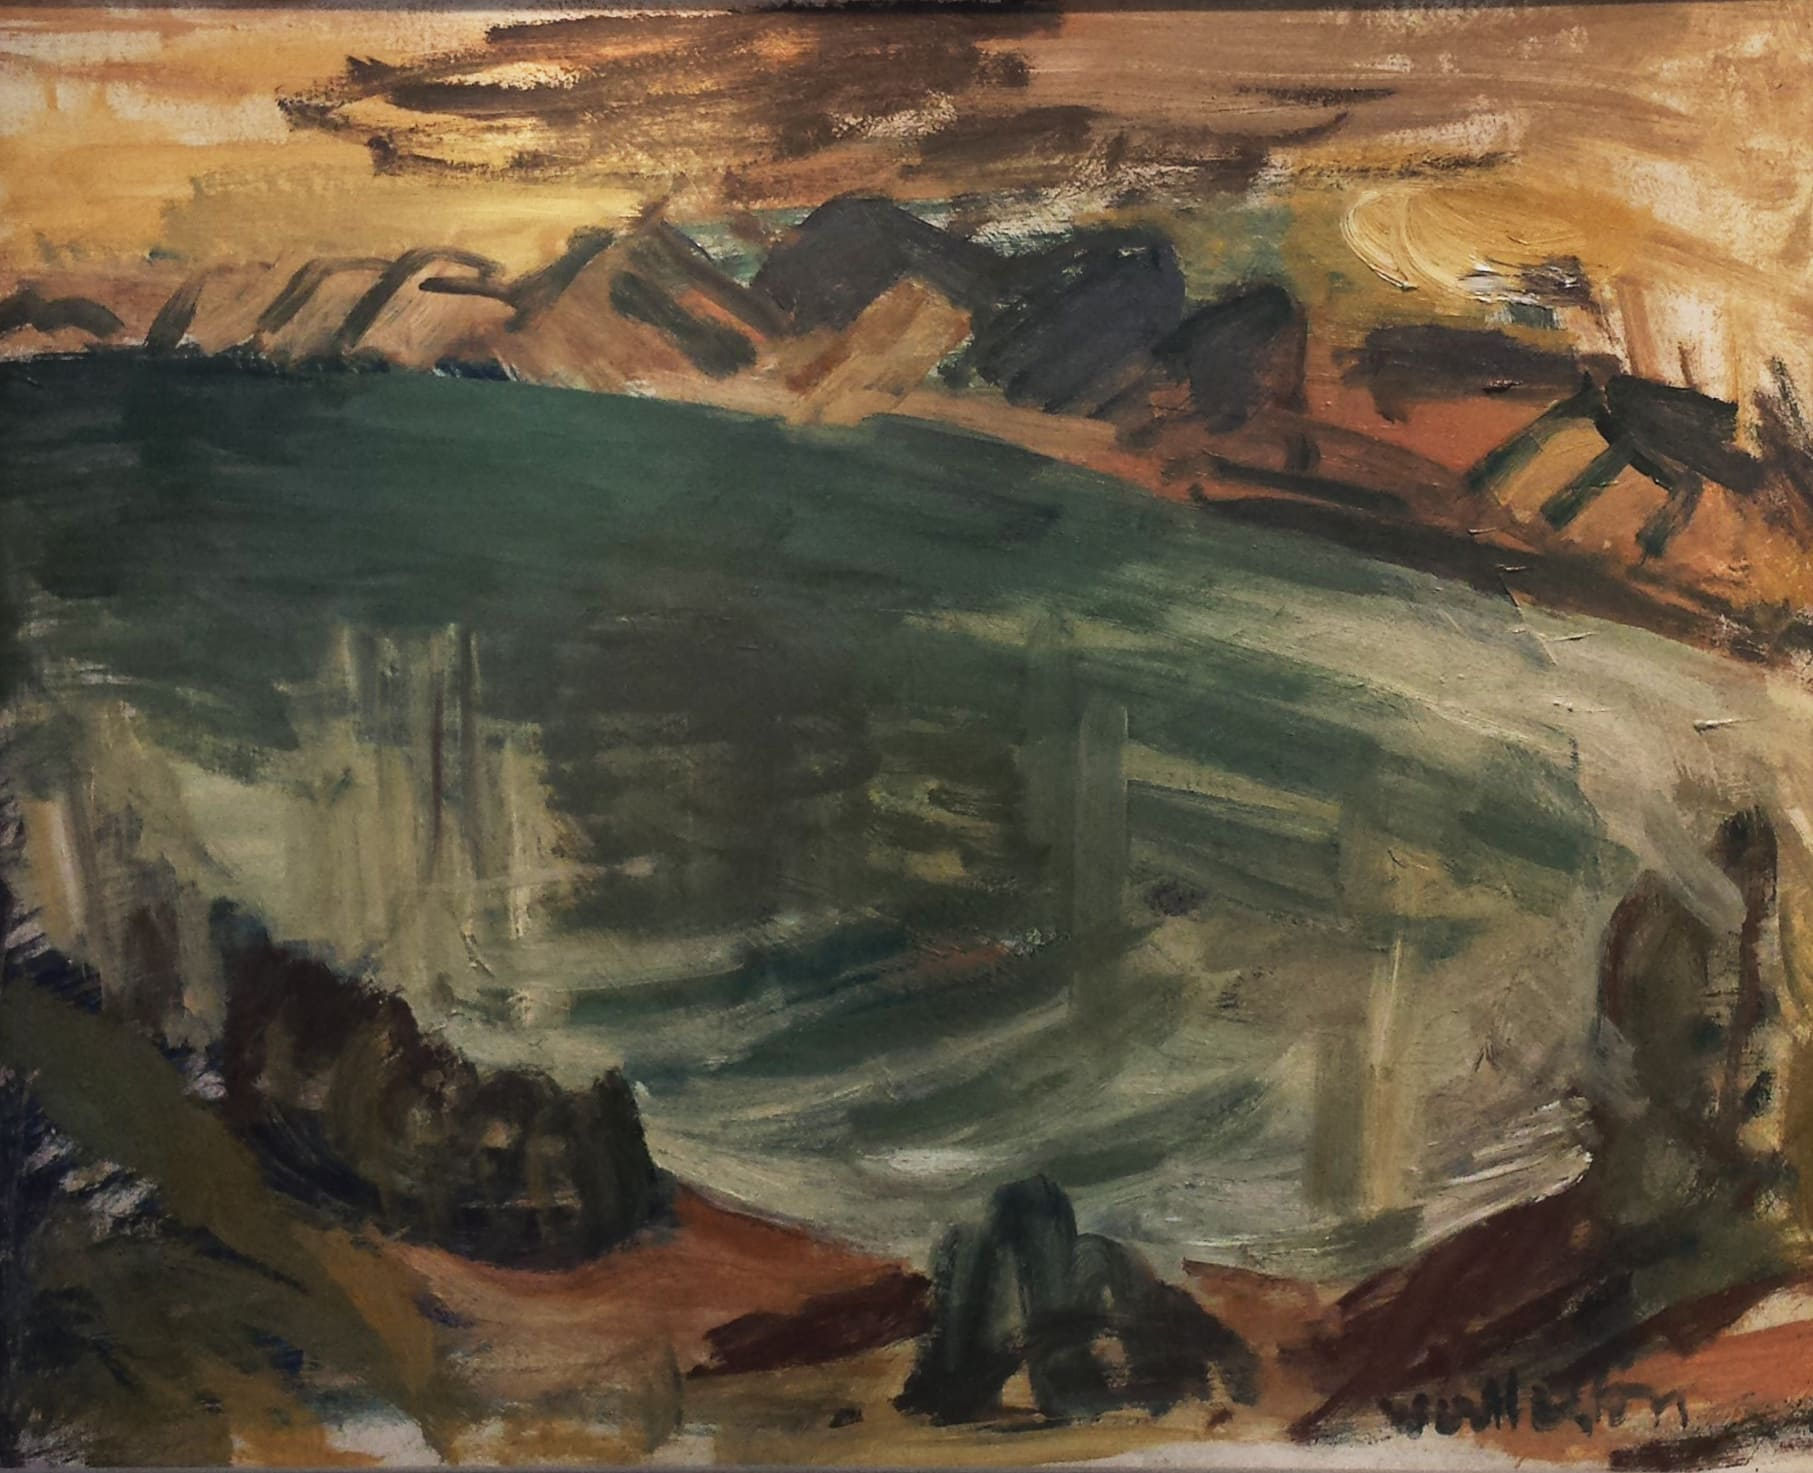 <span class=&#34;link fancybox-details-link&#34;><a href=&#34;/exhibitions/57/works/artworks5054/&#34;>View Detail Page</a></span><div class=&#34;signed_and_dated&#34;>Signed</div> <div class=&#34;medium&#34;>Oil on cardboard</div> <div class=&#34;dimensions&#34;>19.1 x 23.6 in<br />48.5 x 60 cm</div>